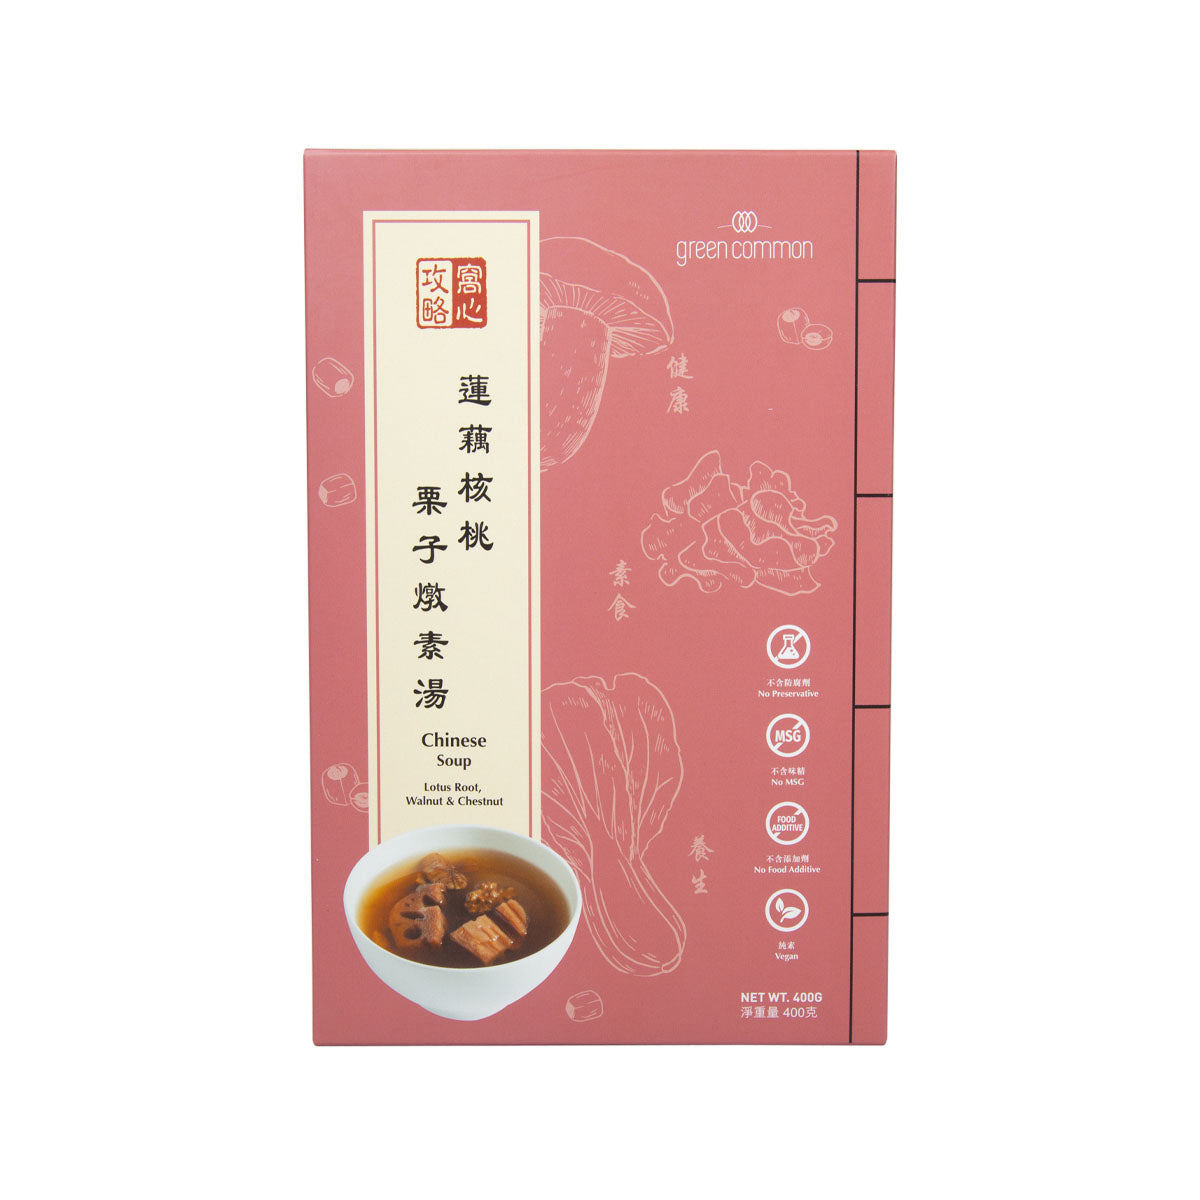 GREEN COMMON Double-Boiled Vegetarian Soup Lotus Root with Walnut and Chestnet Soup  (400g)